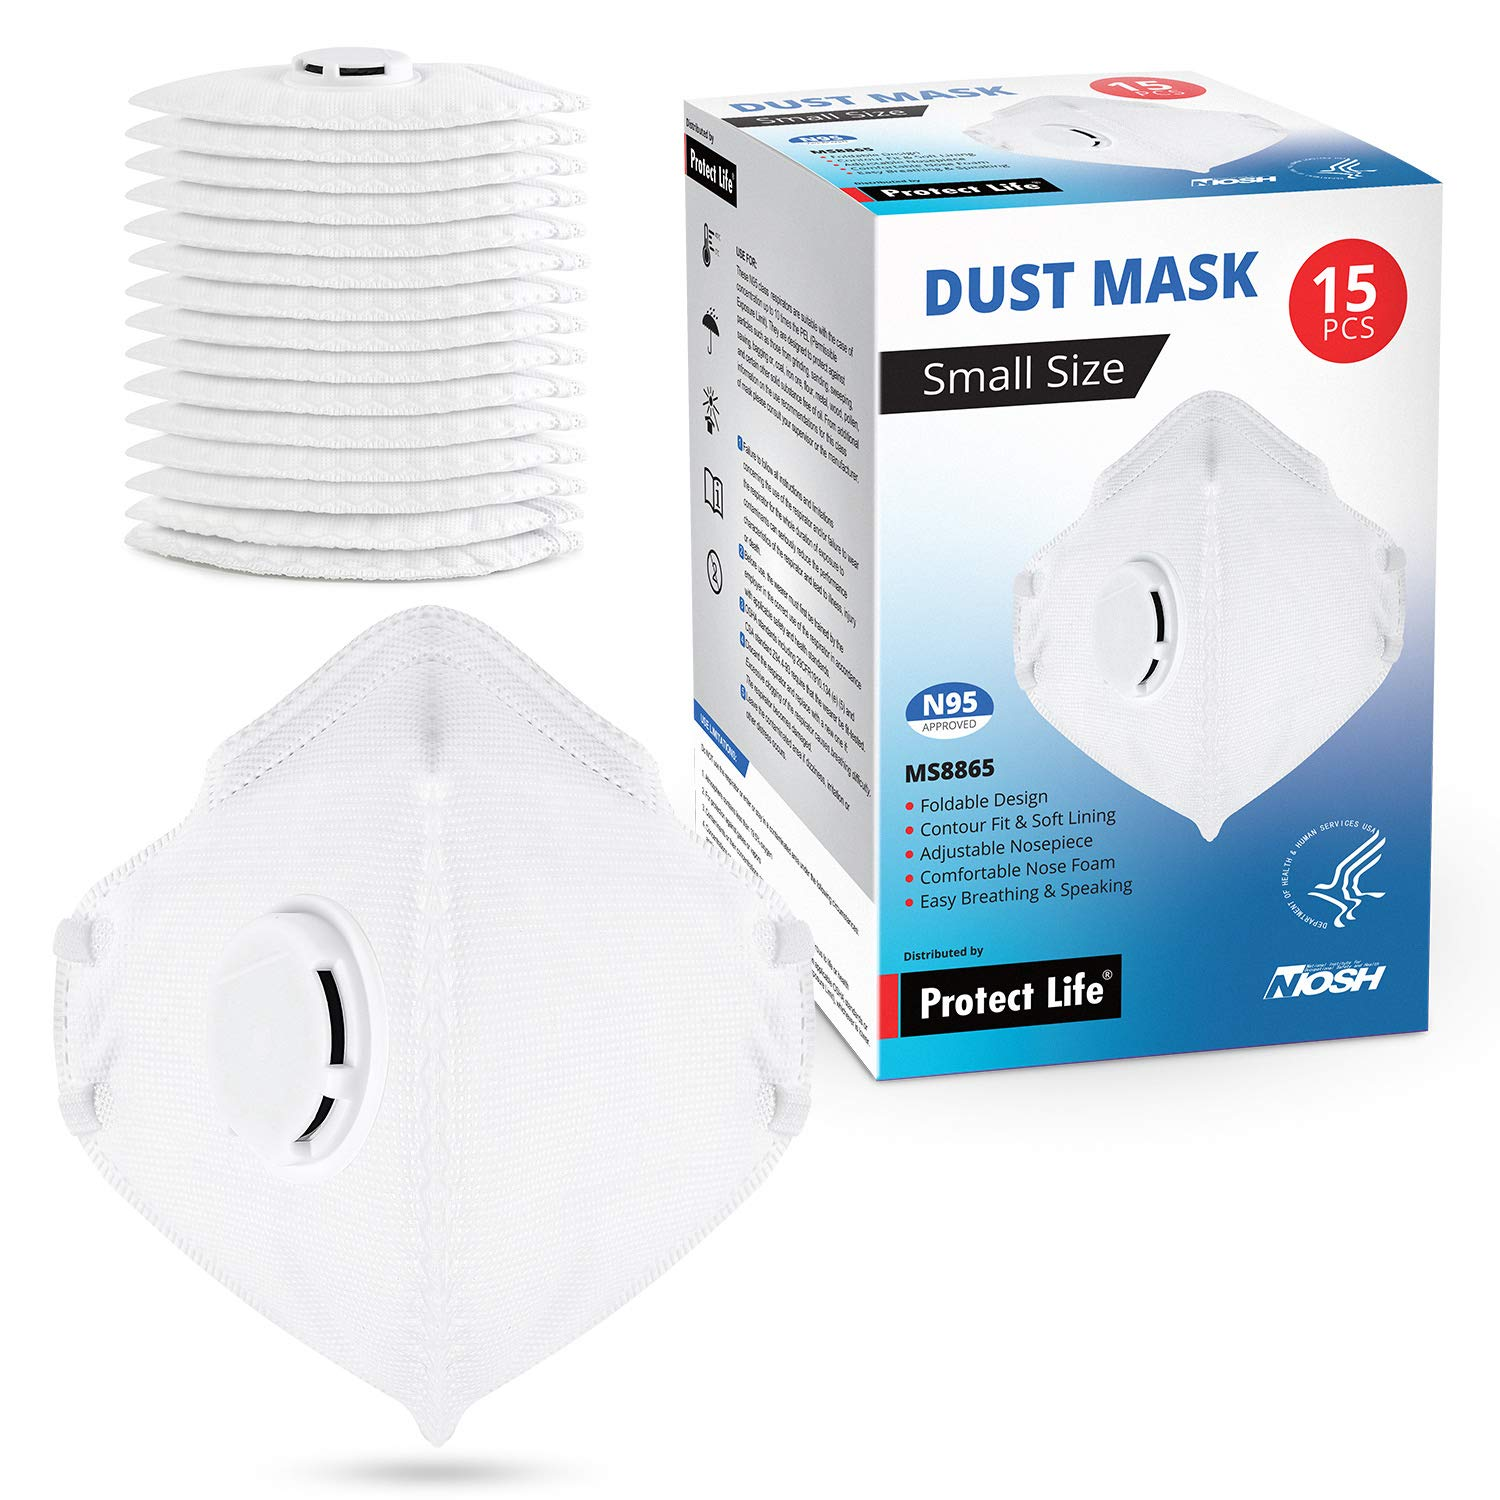 Small Size Dust Mask - 15 pack - Safety N95 Particulate Respirator w/Exhalation Valve   4-Layers Protection from dust, pollution, allergens & more by Protect Life